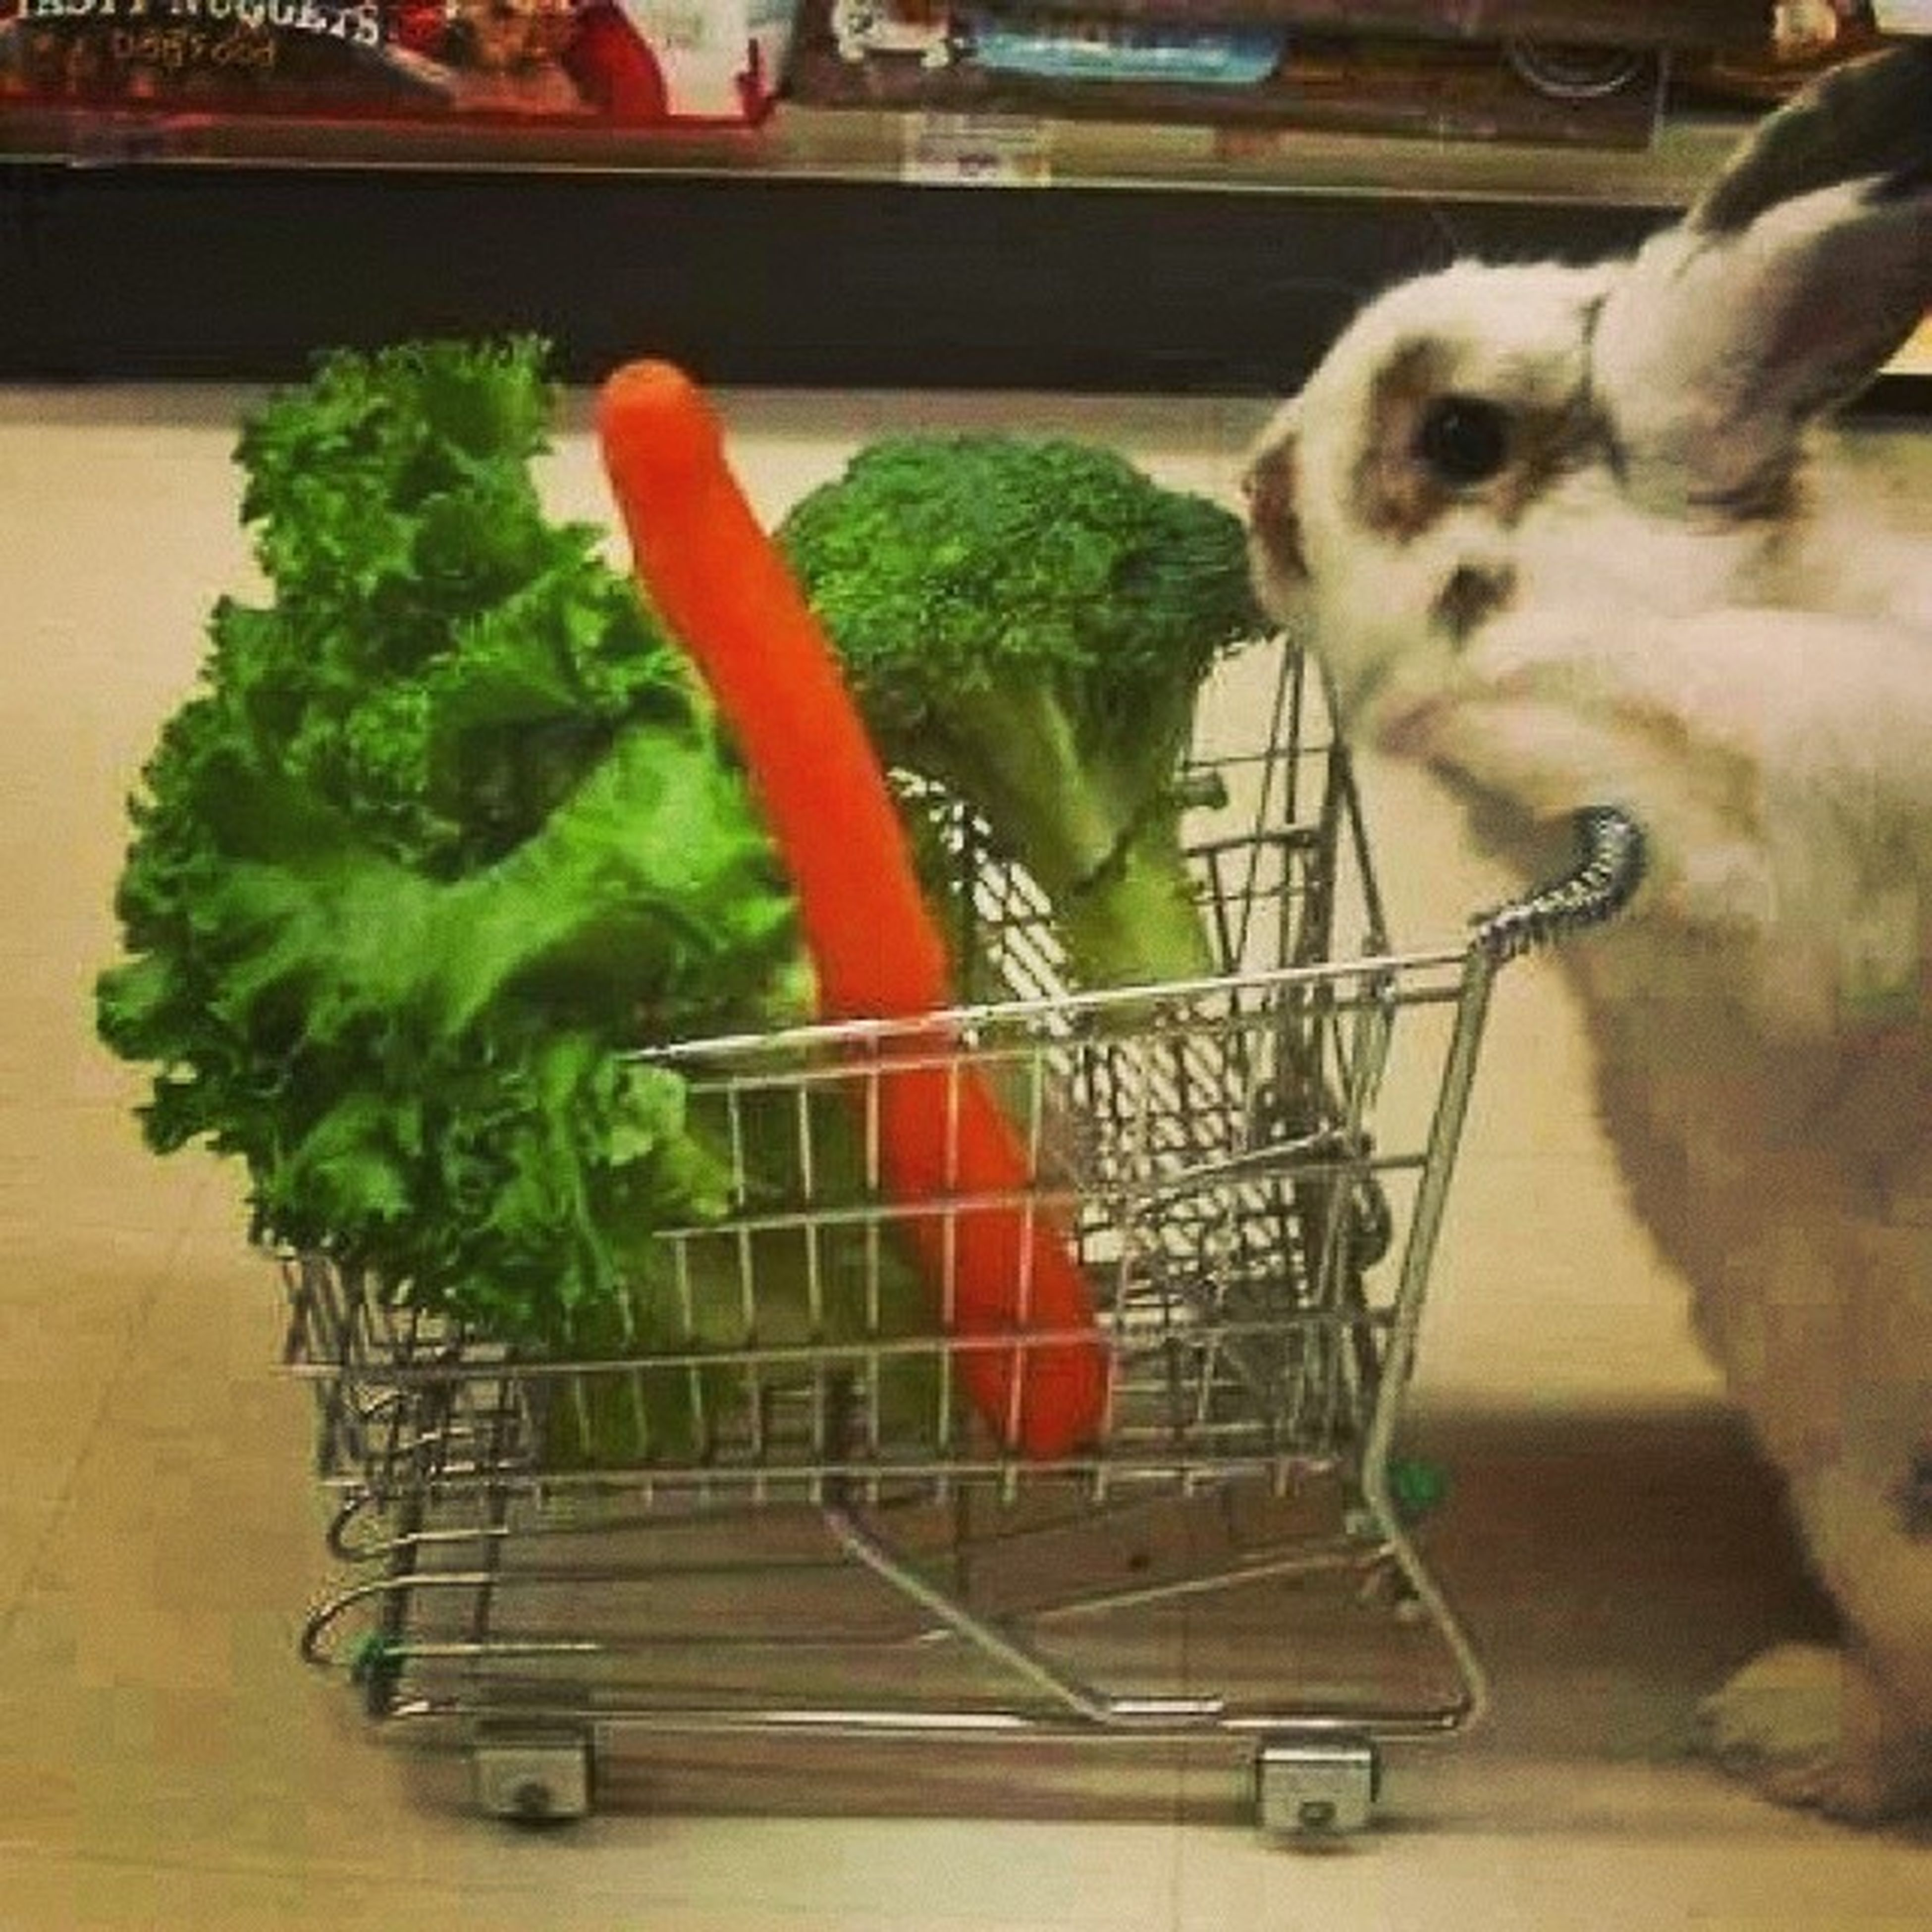 Migros Tansaş Pazar Alışveriş shopping tesco waitrose eataly rabbit animal nature save recycle keep green eat vegetable